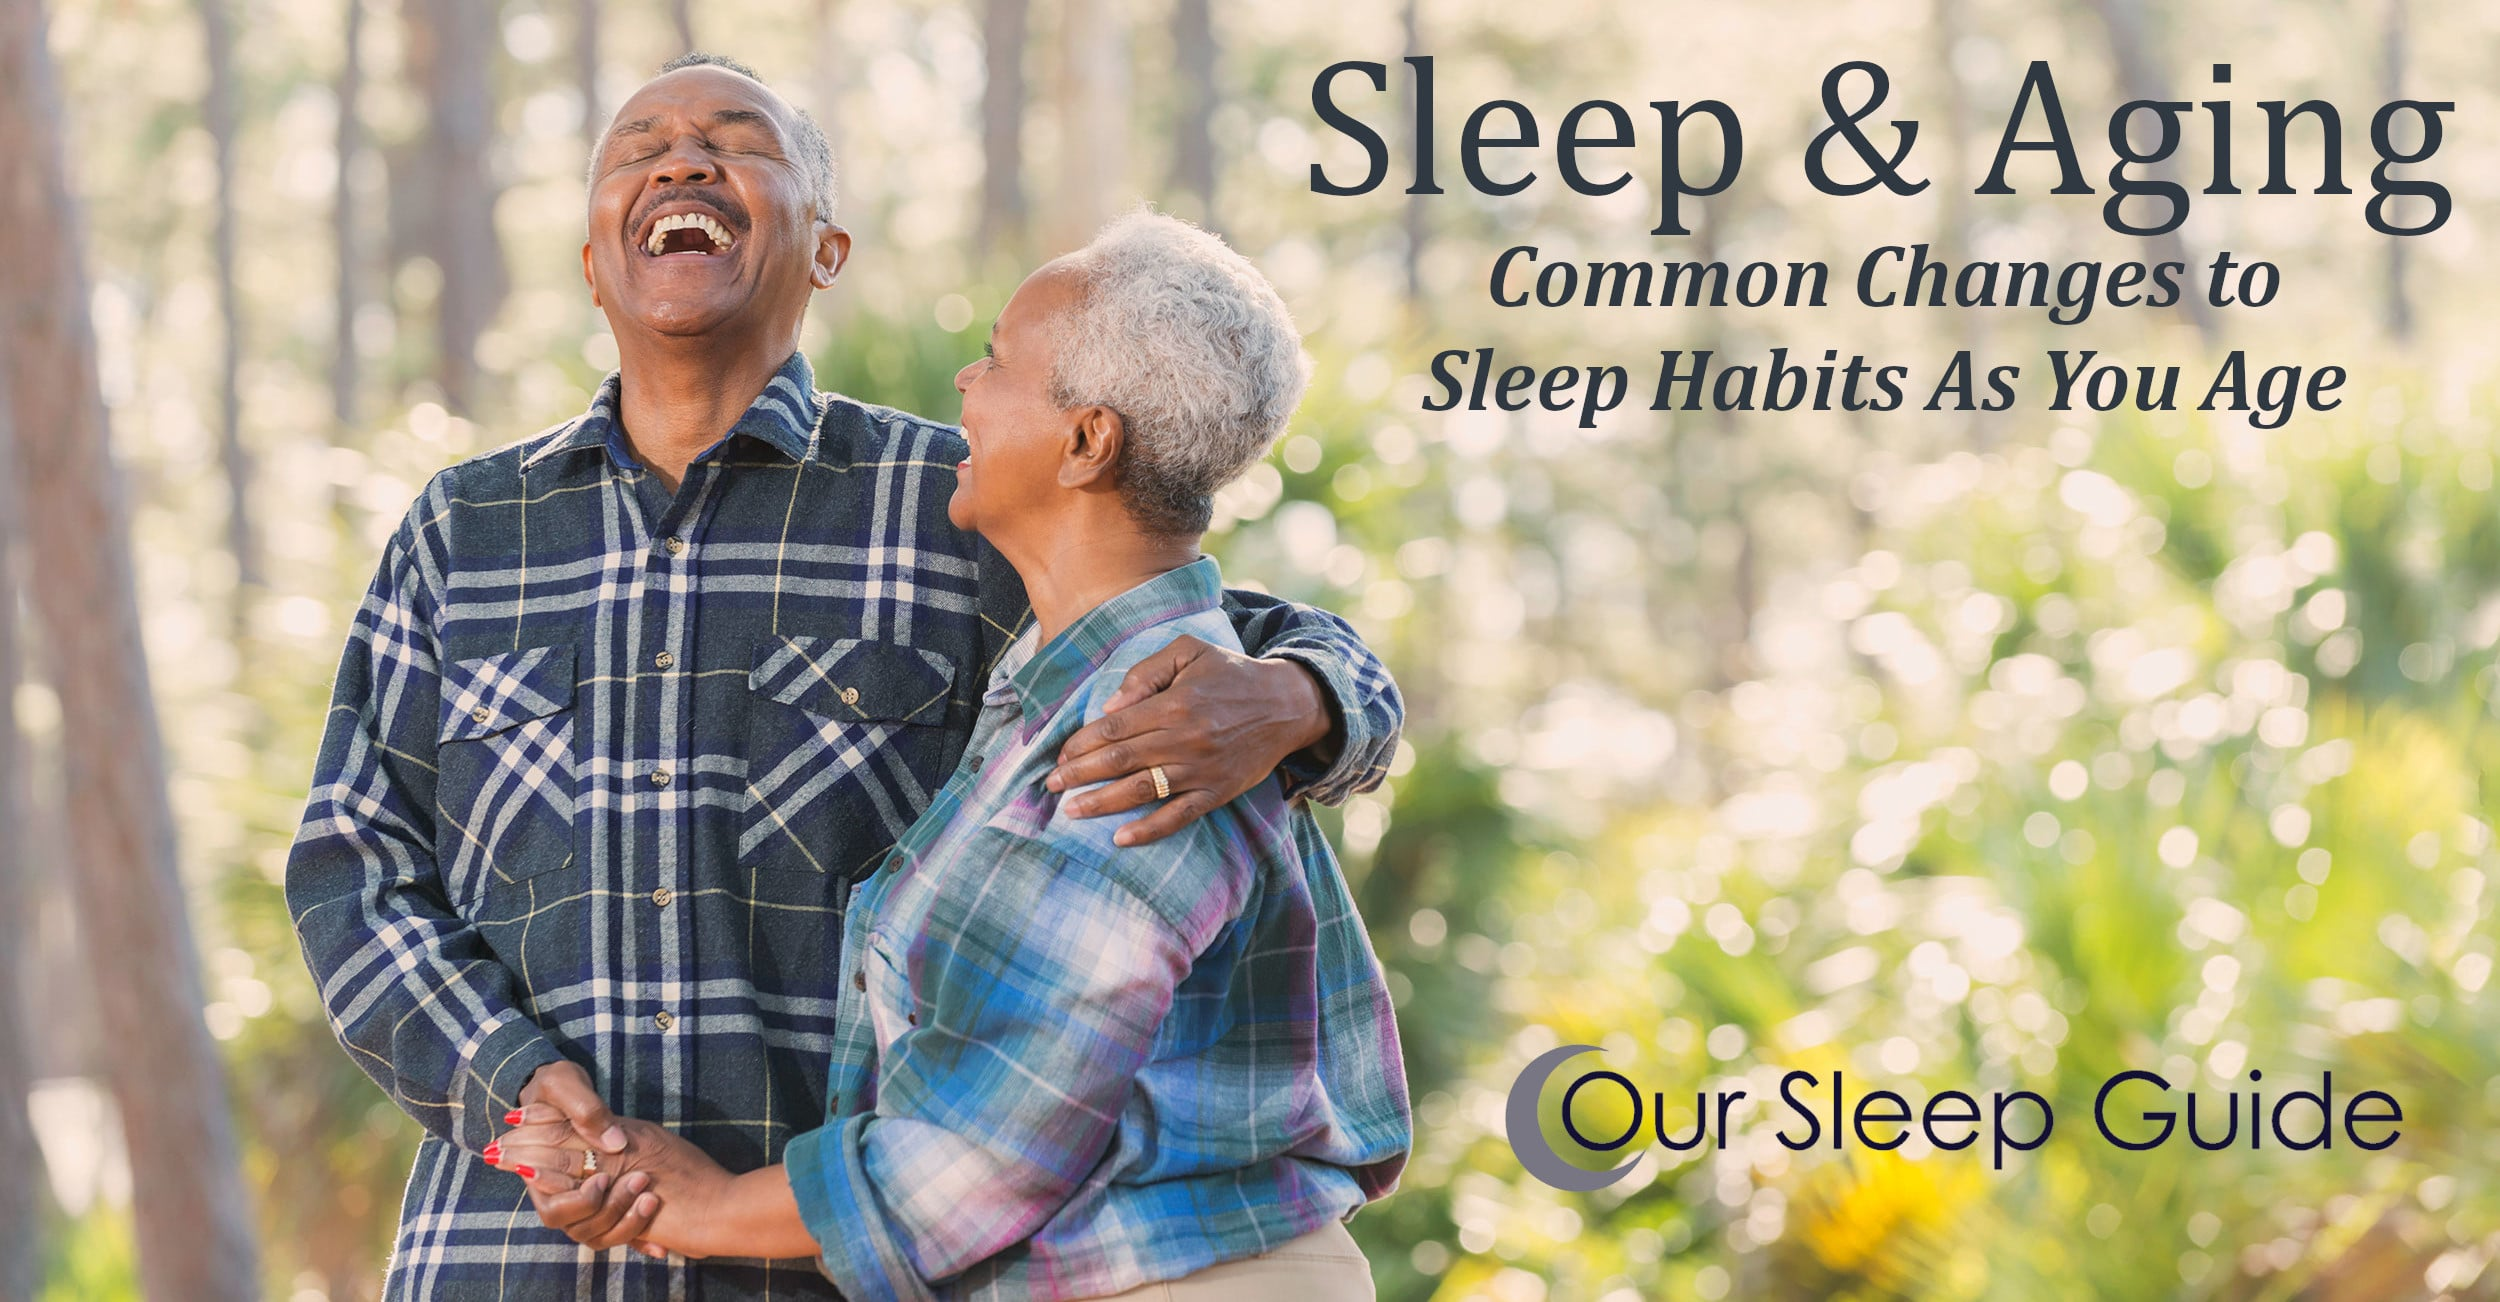 sleep and aging common changes to sleep habits as you age